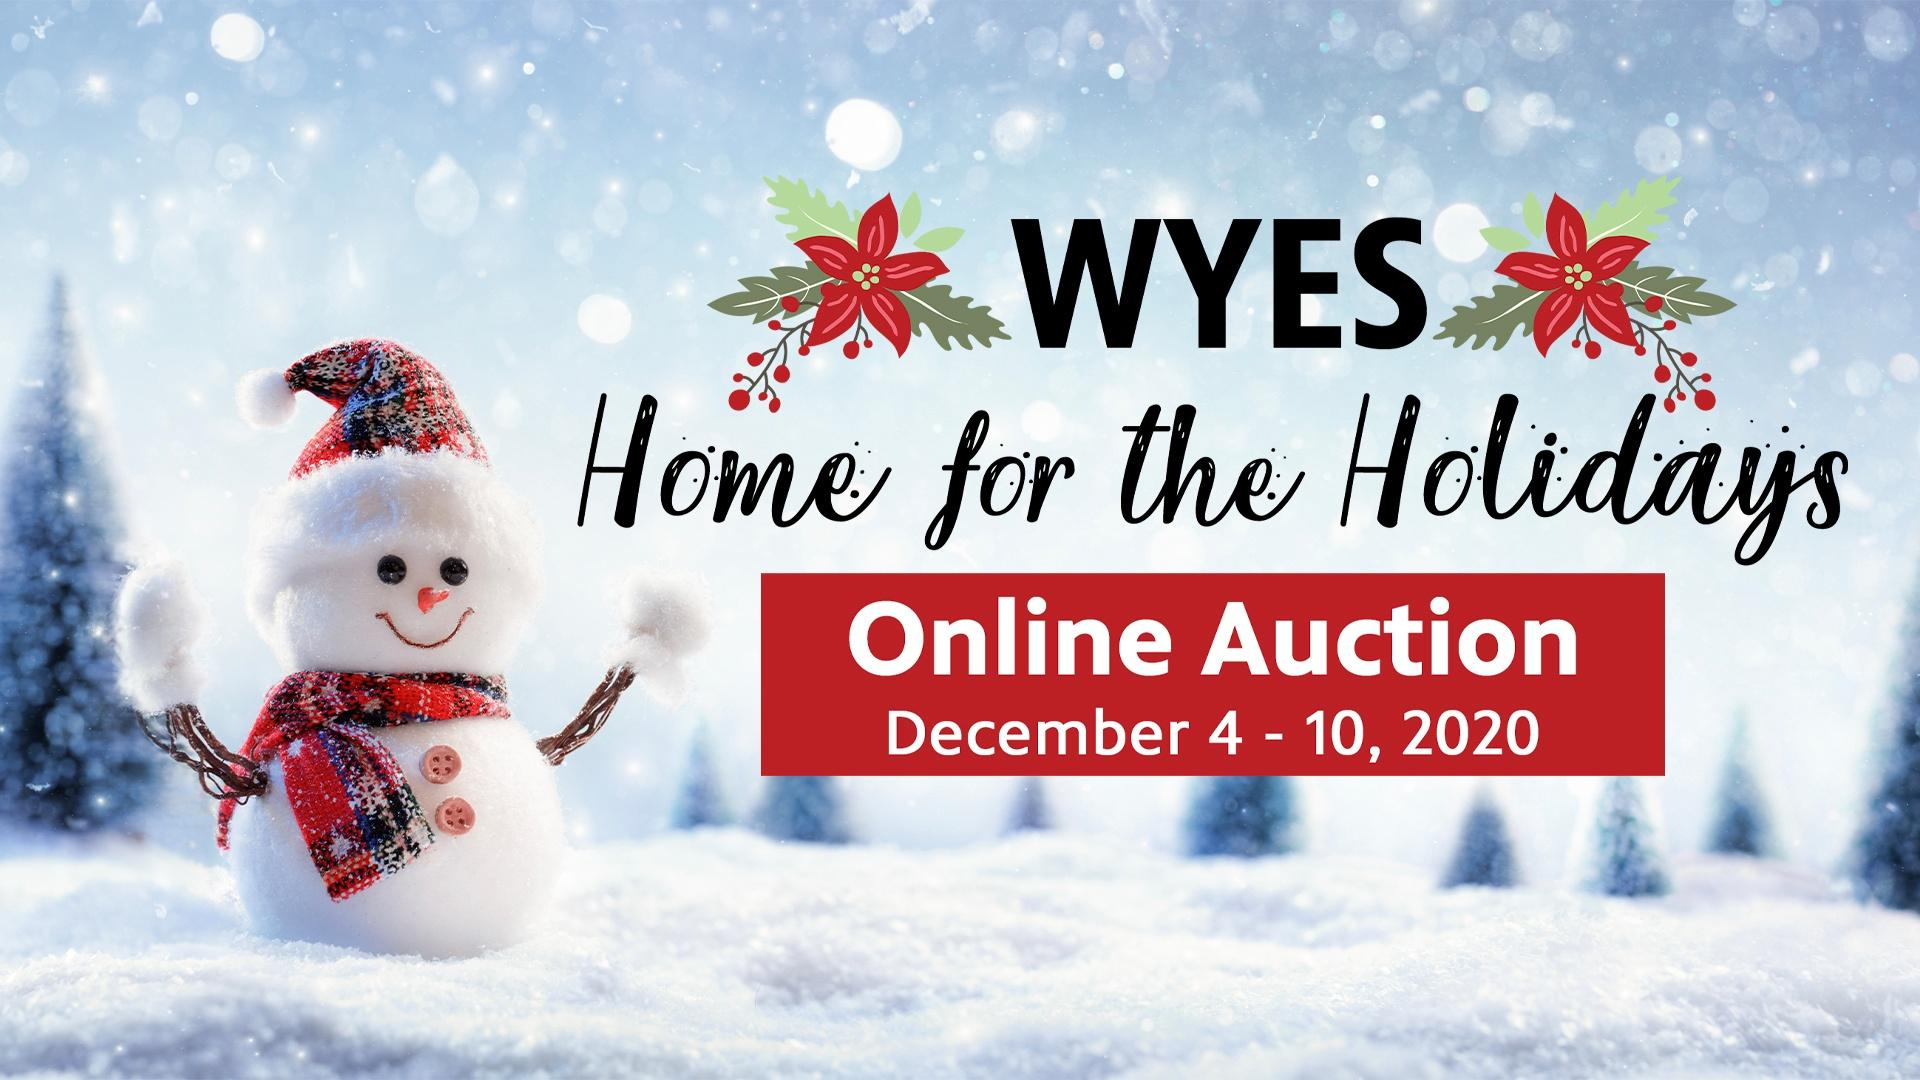 WYES HOME FOR THE HOLIDAYS ONLINE AUCTION